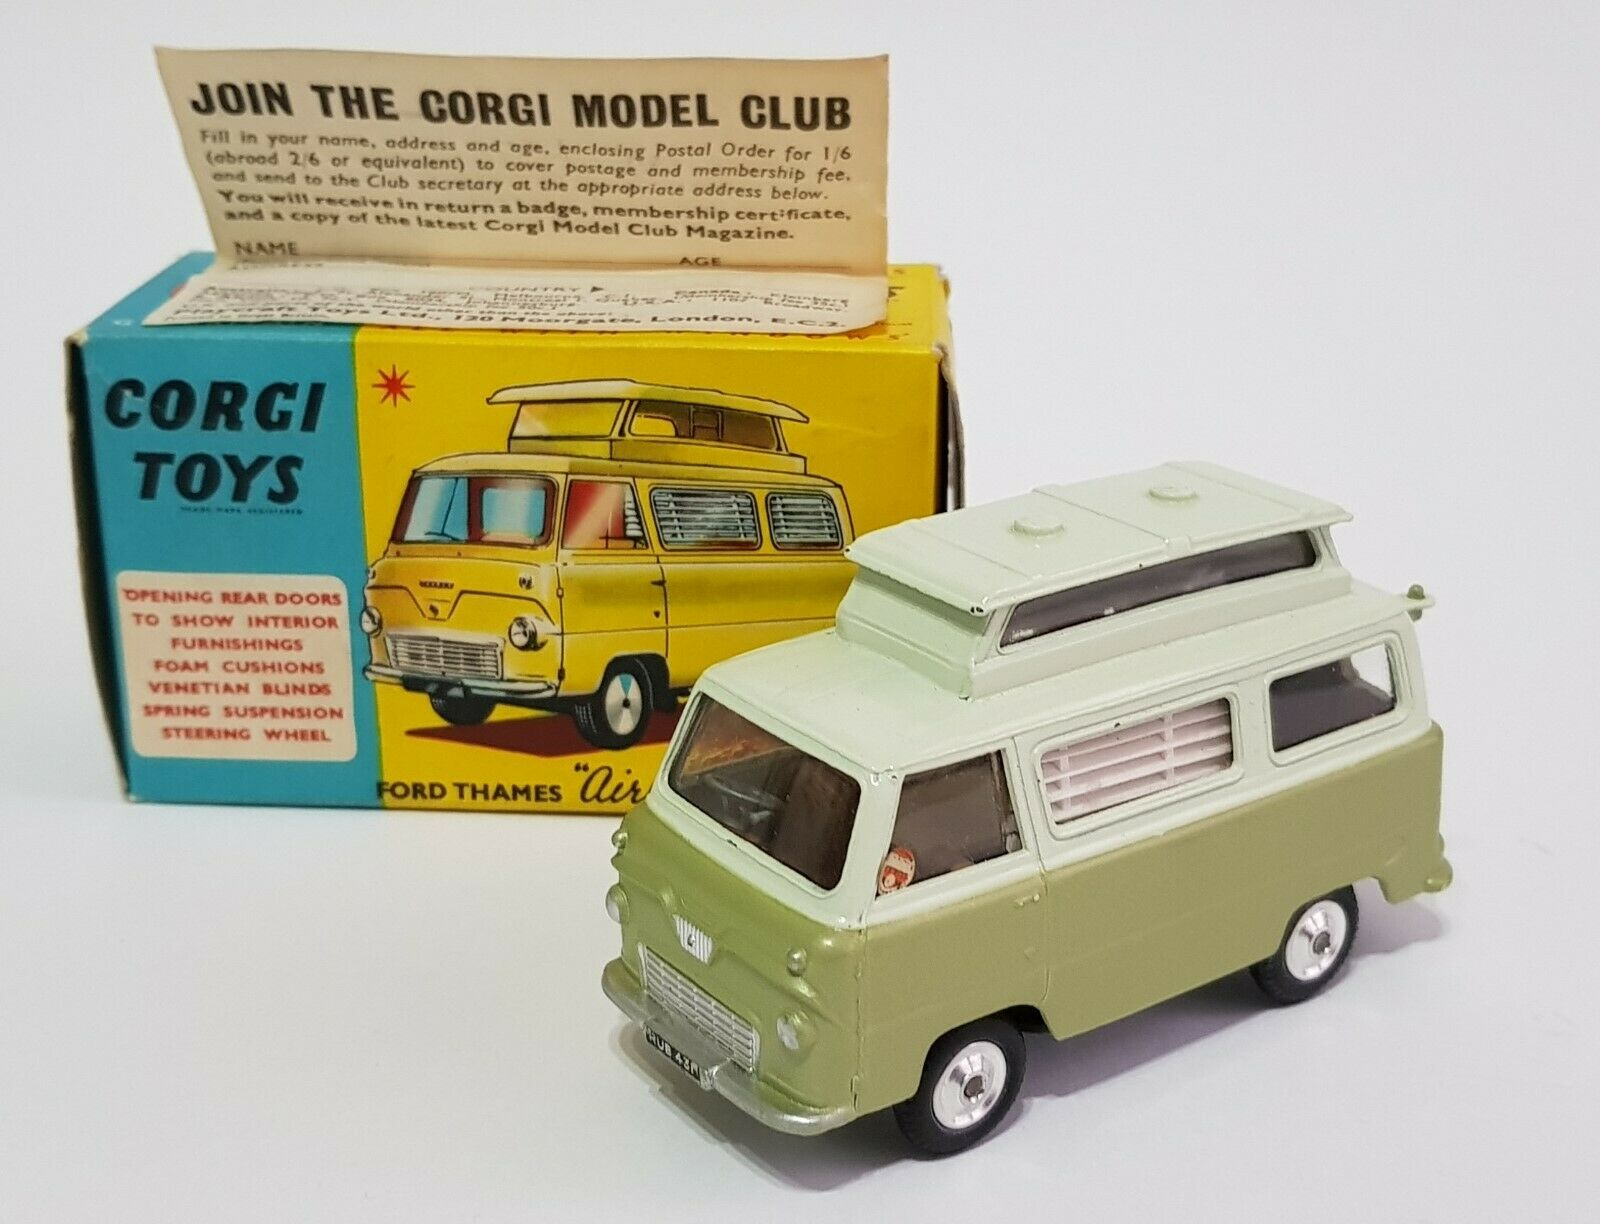 Corgi Spielzeugs No. 420, Ford Thames 'Airborne' voitureavan, Superb V Near Mint Condition